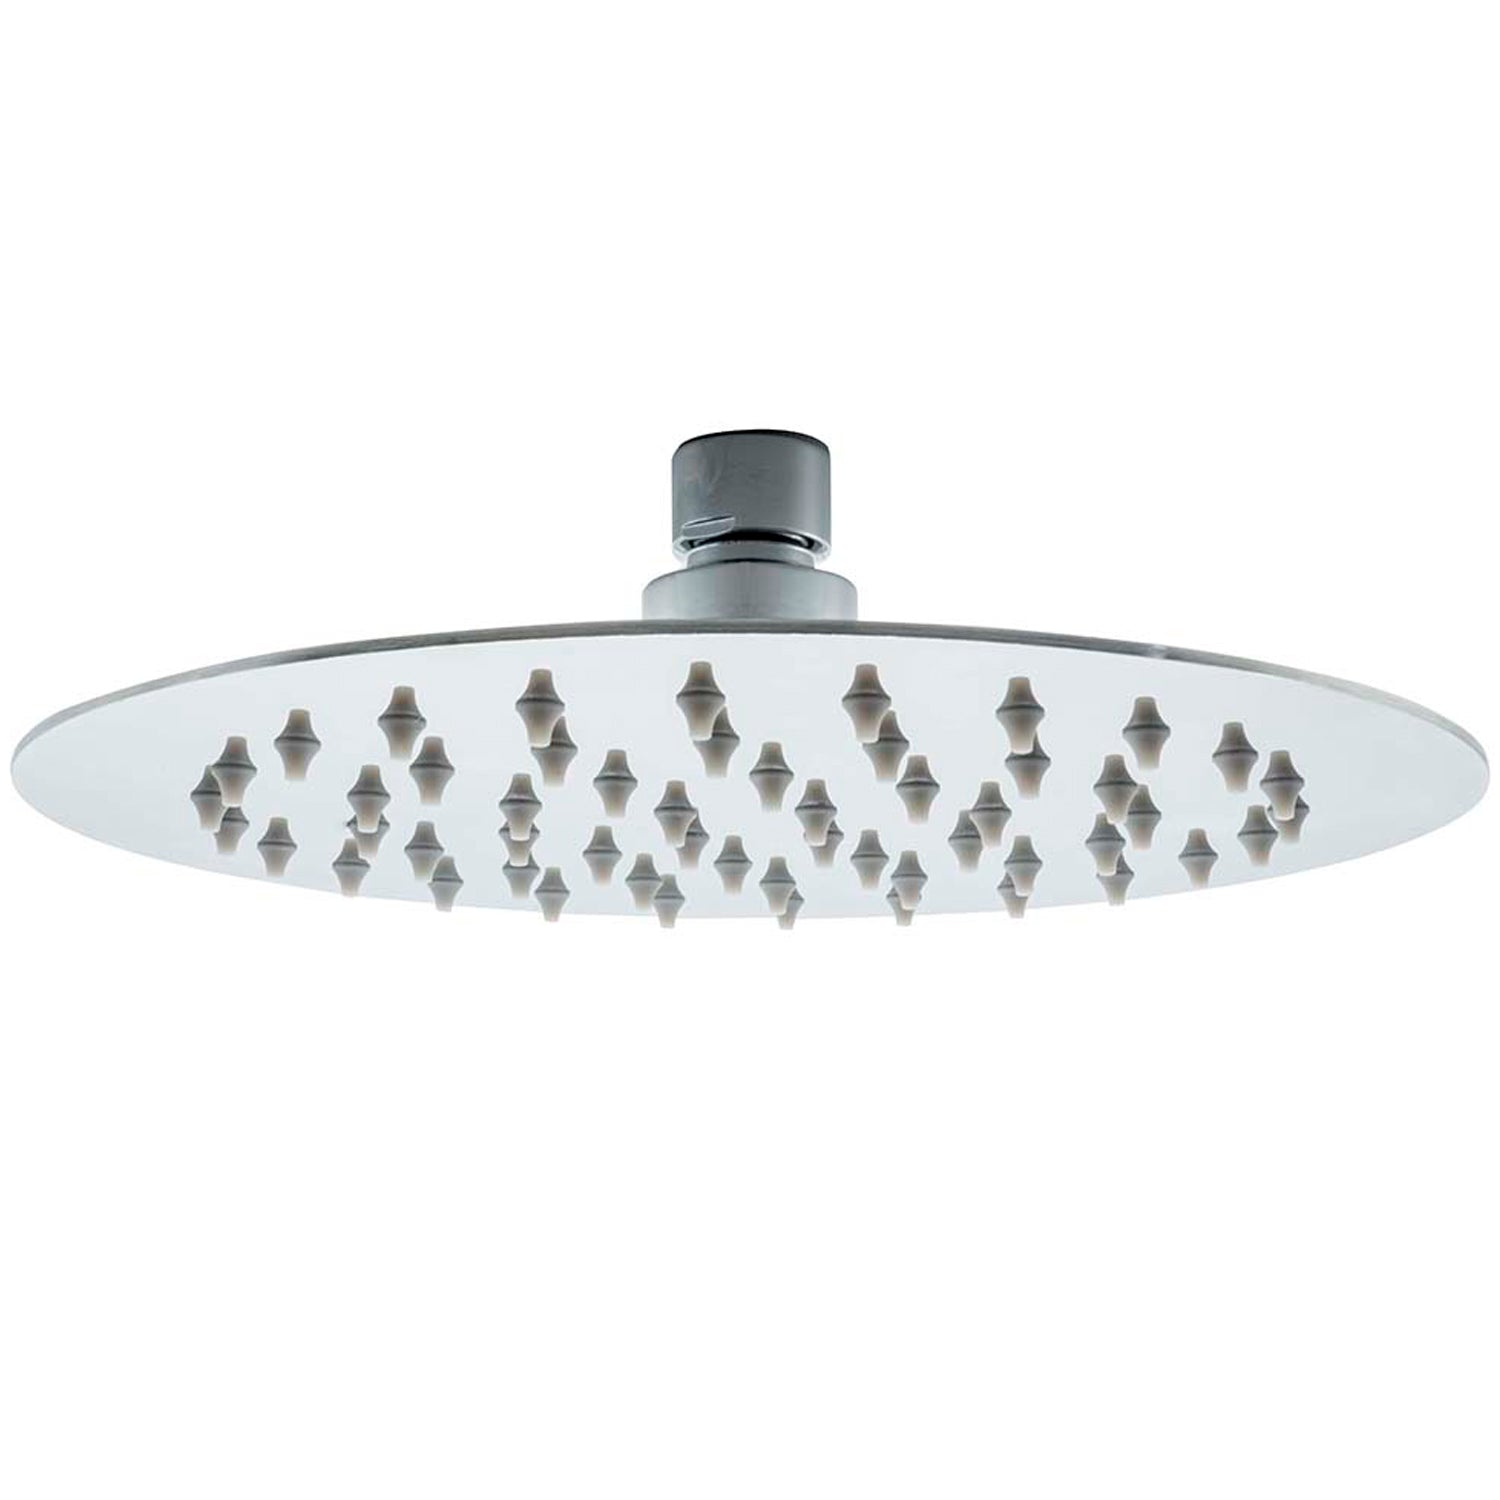 200mm Modale Rainwater Shower Head with a chrome finish on a white background